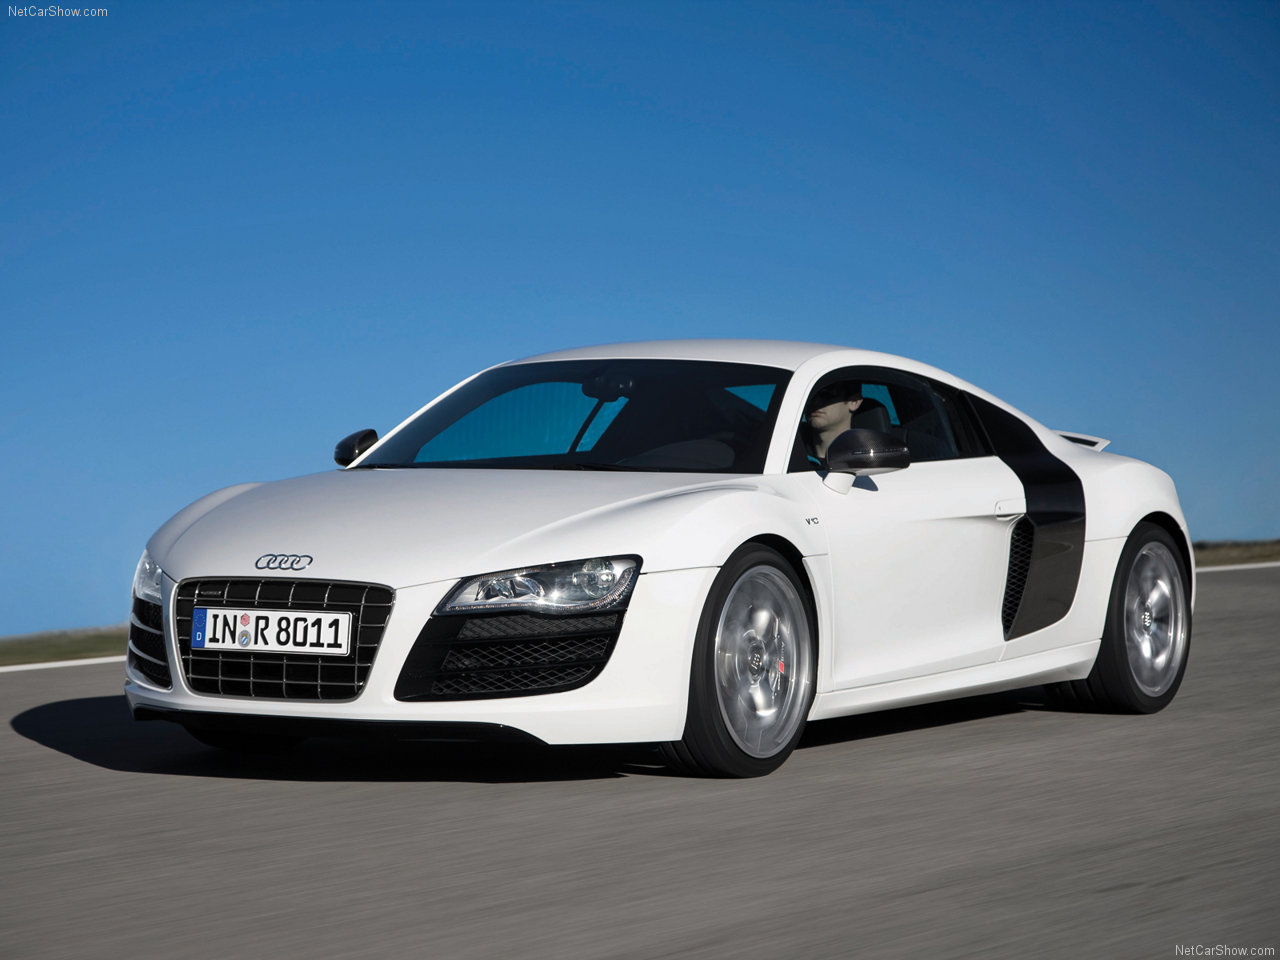 White Carbon Fiber Cars Review S And Information Blog Archive Audi R 128516 Wallpaper wallpaper